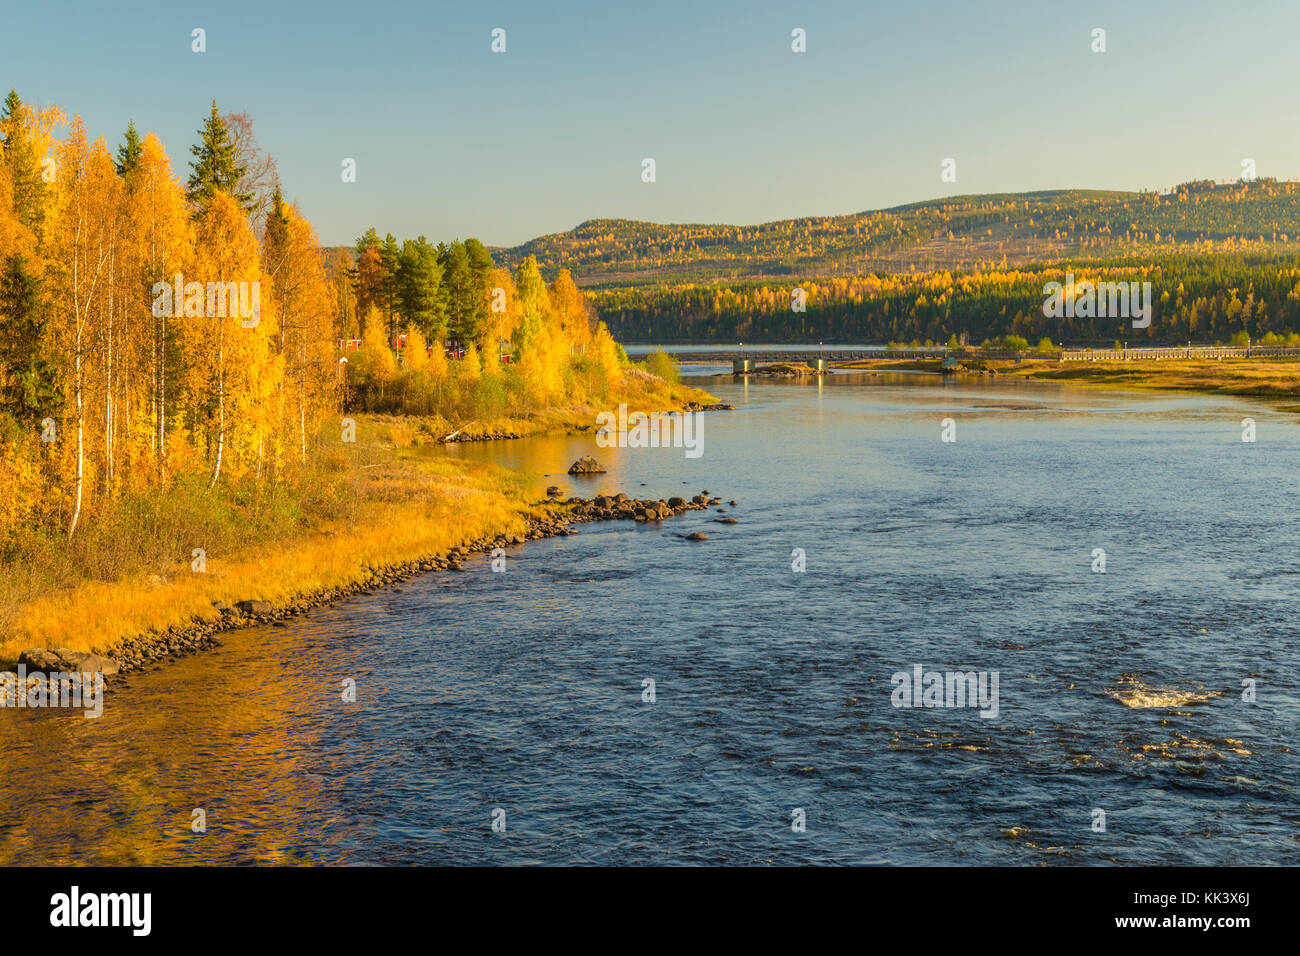 View over Storforsen with yellow birch trees, bridge crossing the river, Storforsen, Älvsbyn county, Norrbotten - Stock Image